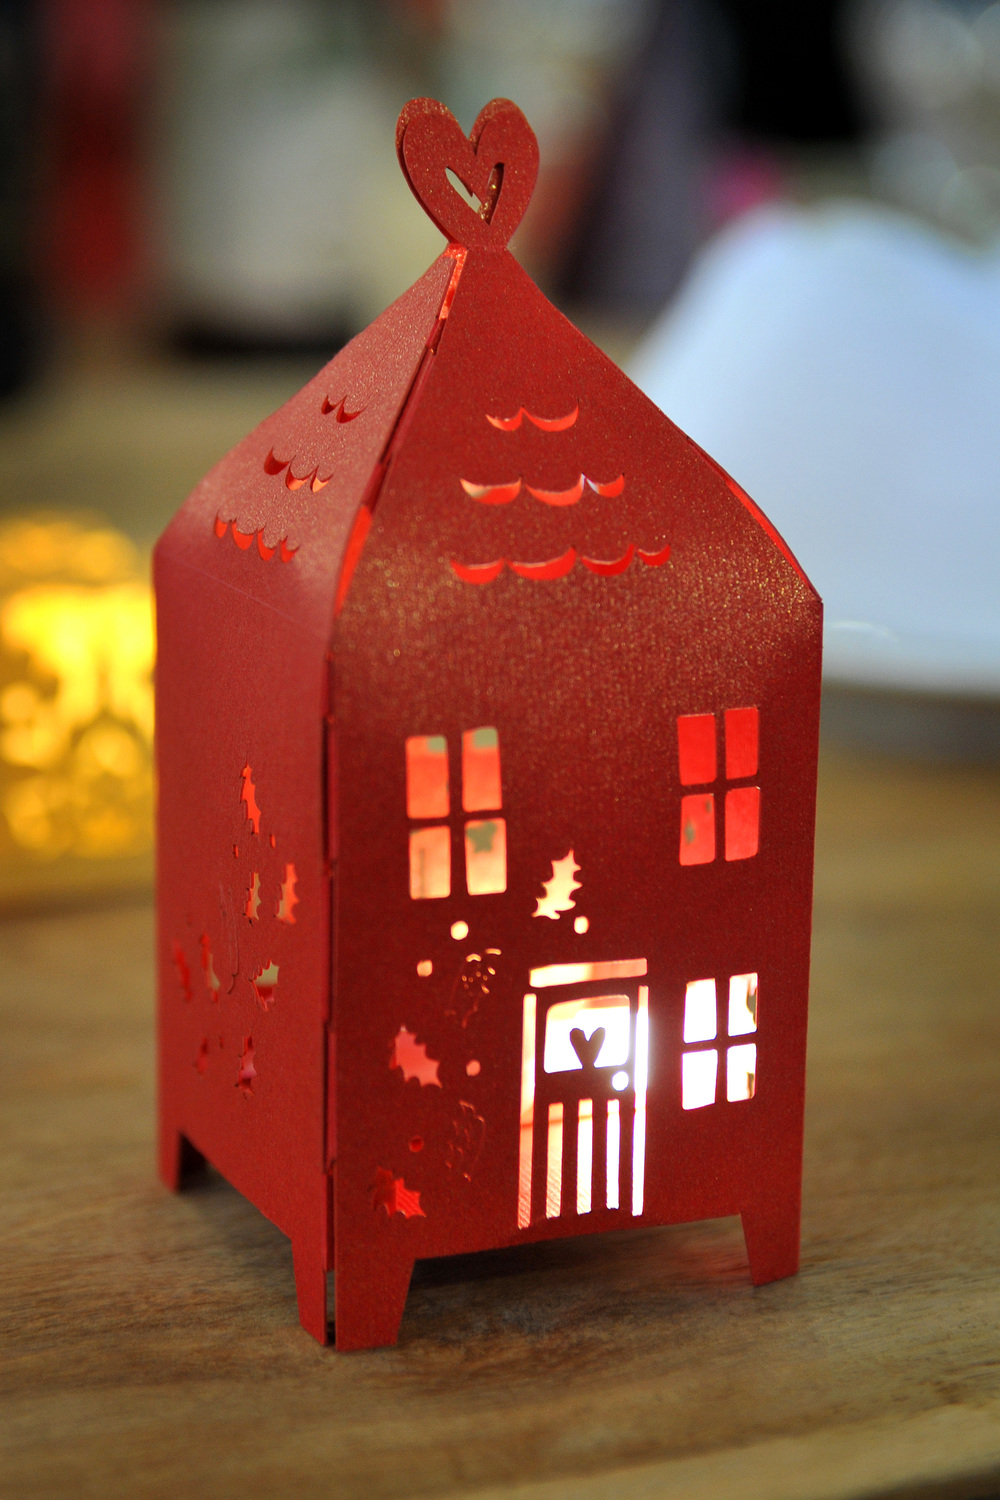 kew-gardens-lasercut-mini-houses.jpg